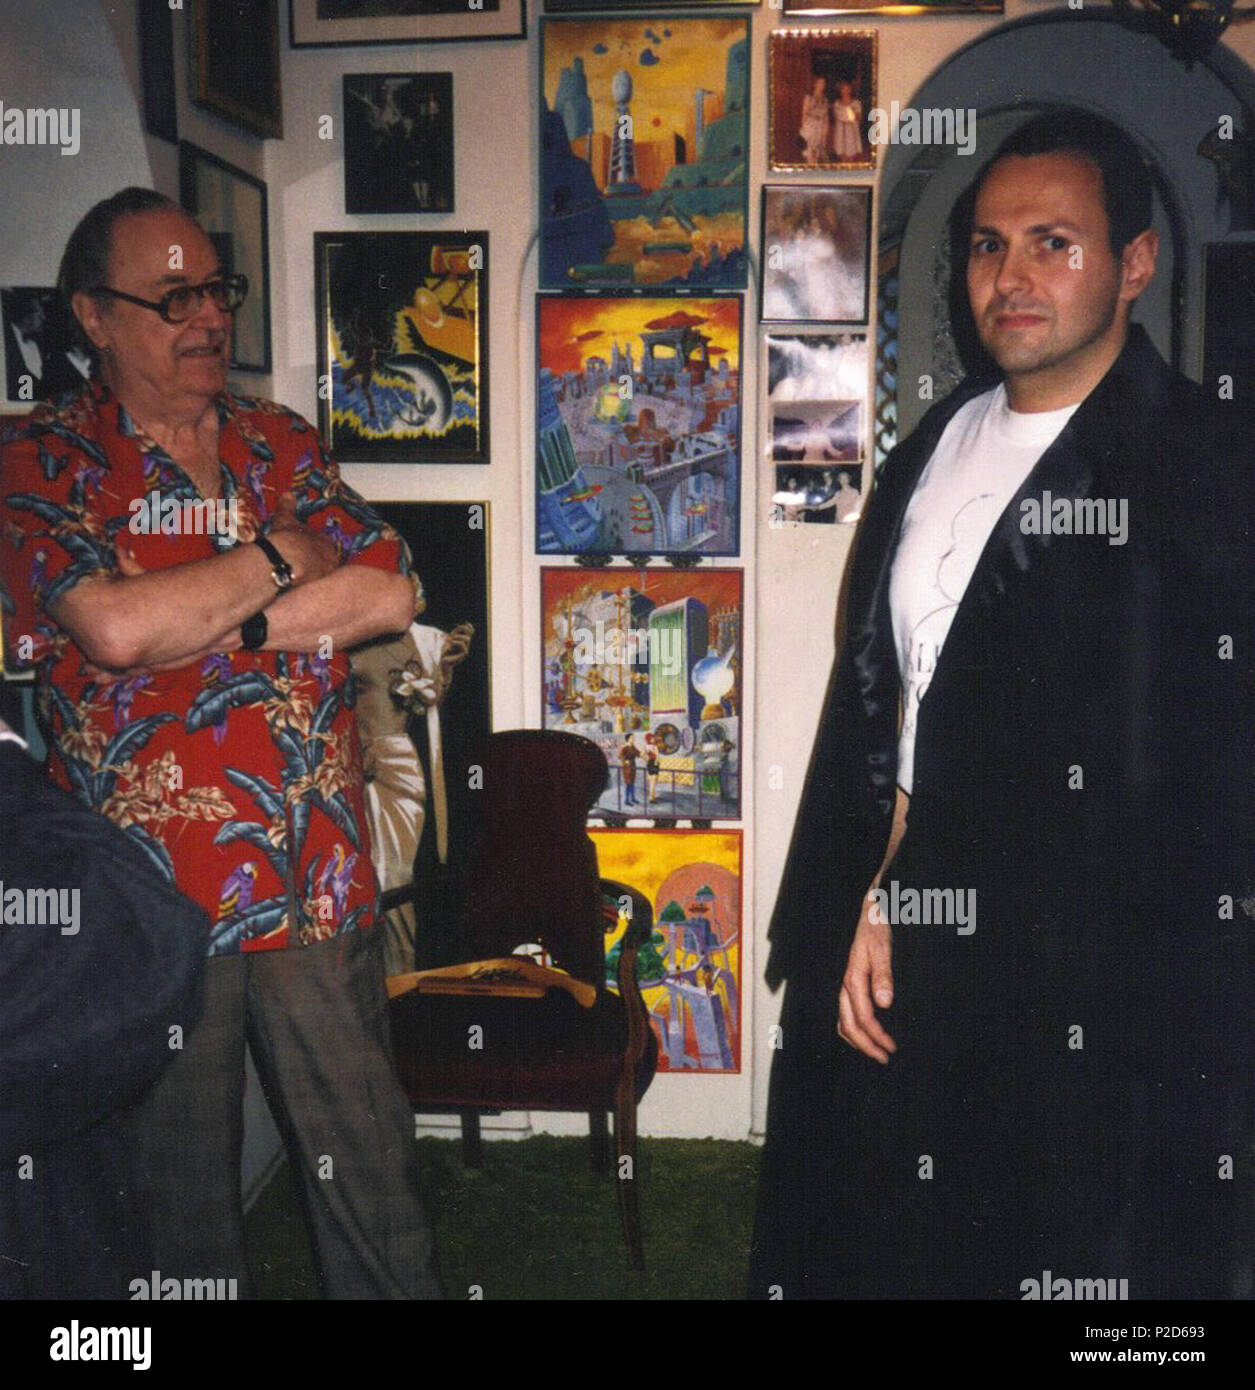 . English: Forrest J. Ackerman letting a fan try on cape worn by Bela Lugosi in film Plan 9 from Outer Space (1959), directed by Ed Wood. 1994. Michael Wilk 20 Forrest J. Ackerman, collector of movie memorabilia, with fan. - Stock Image